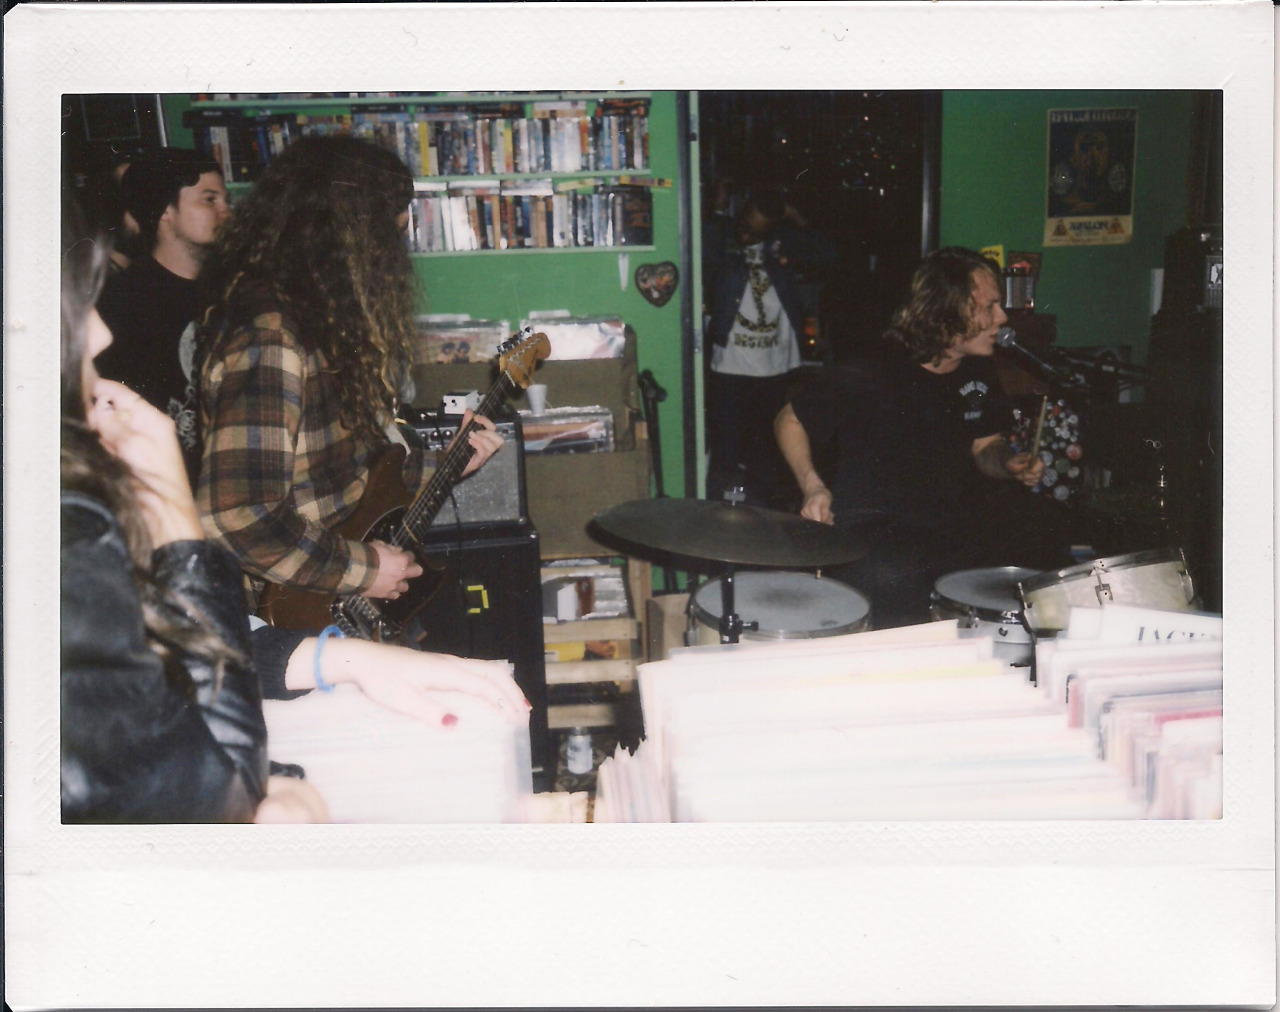 FUZZ @ Burger Records 12/28/12 Photo By LaChicaBanda